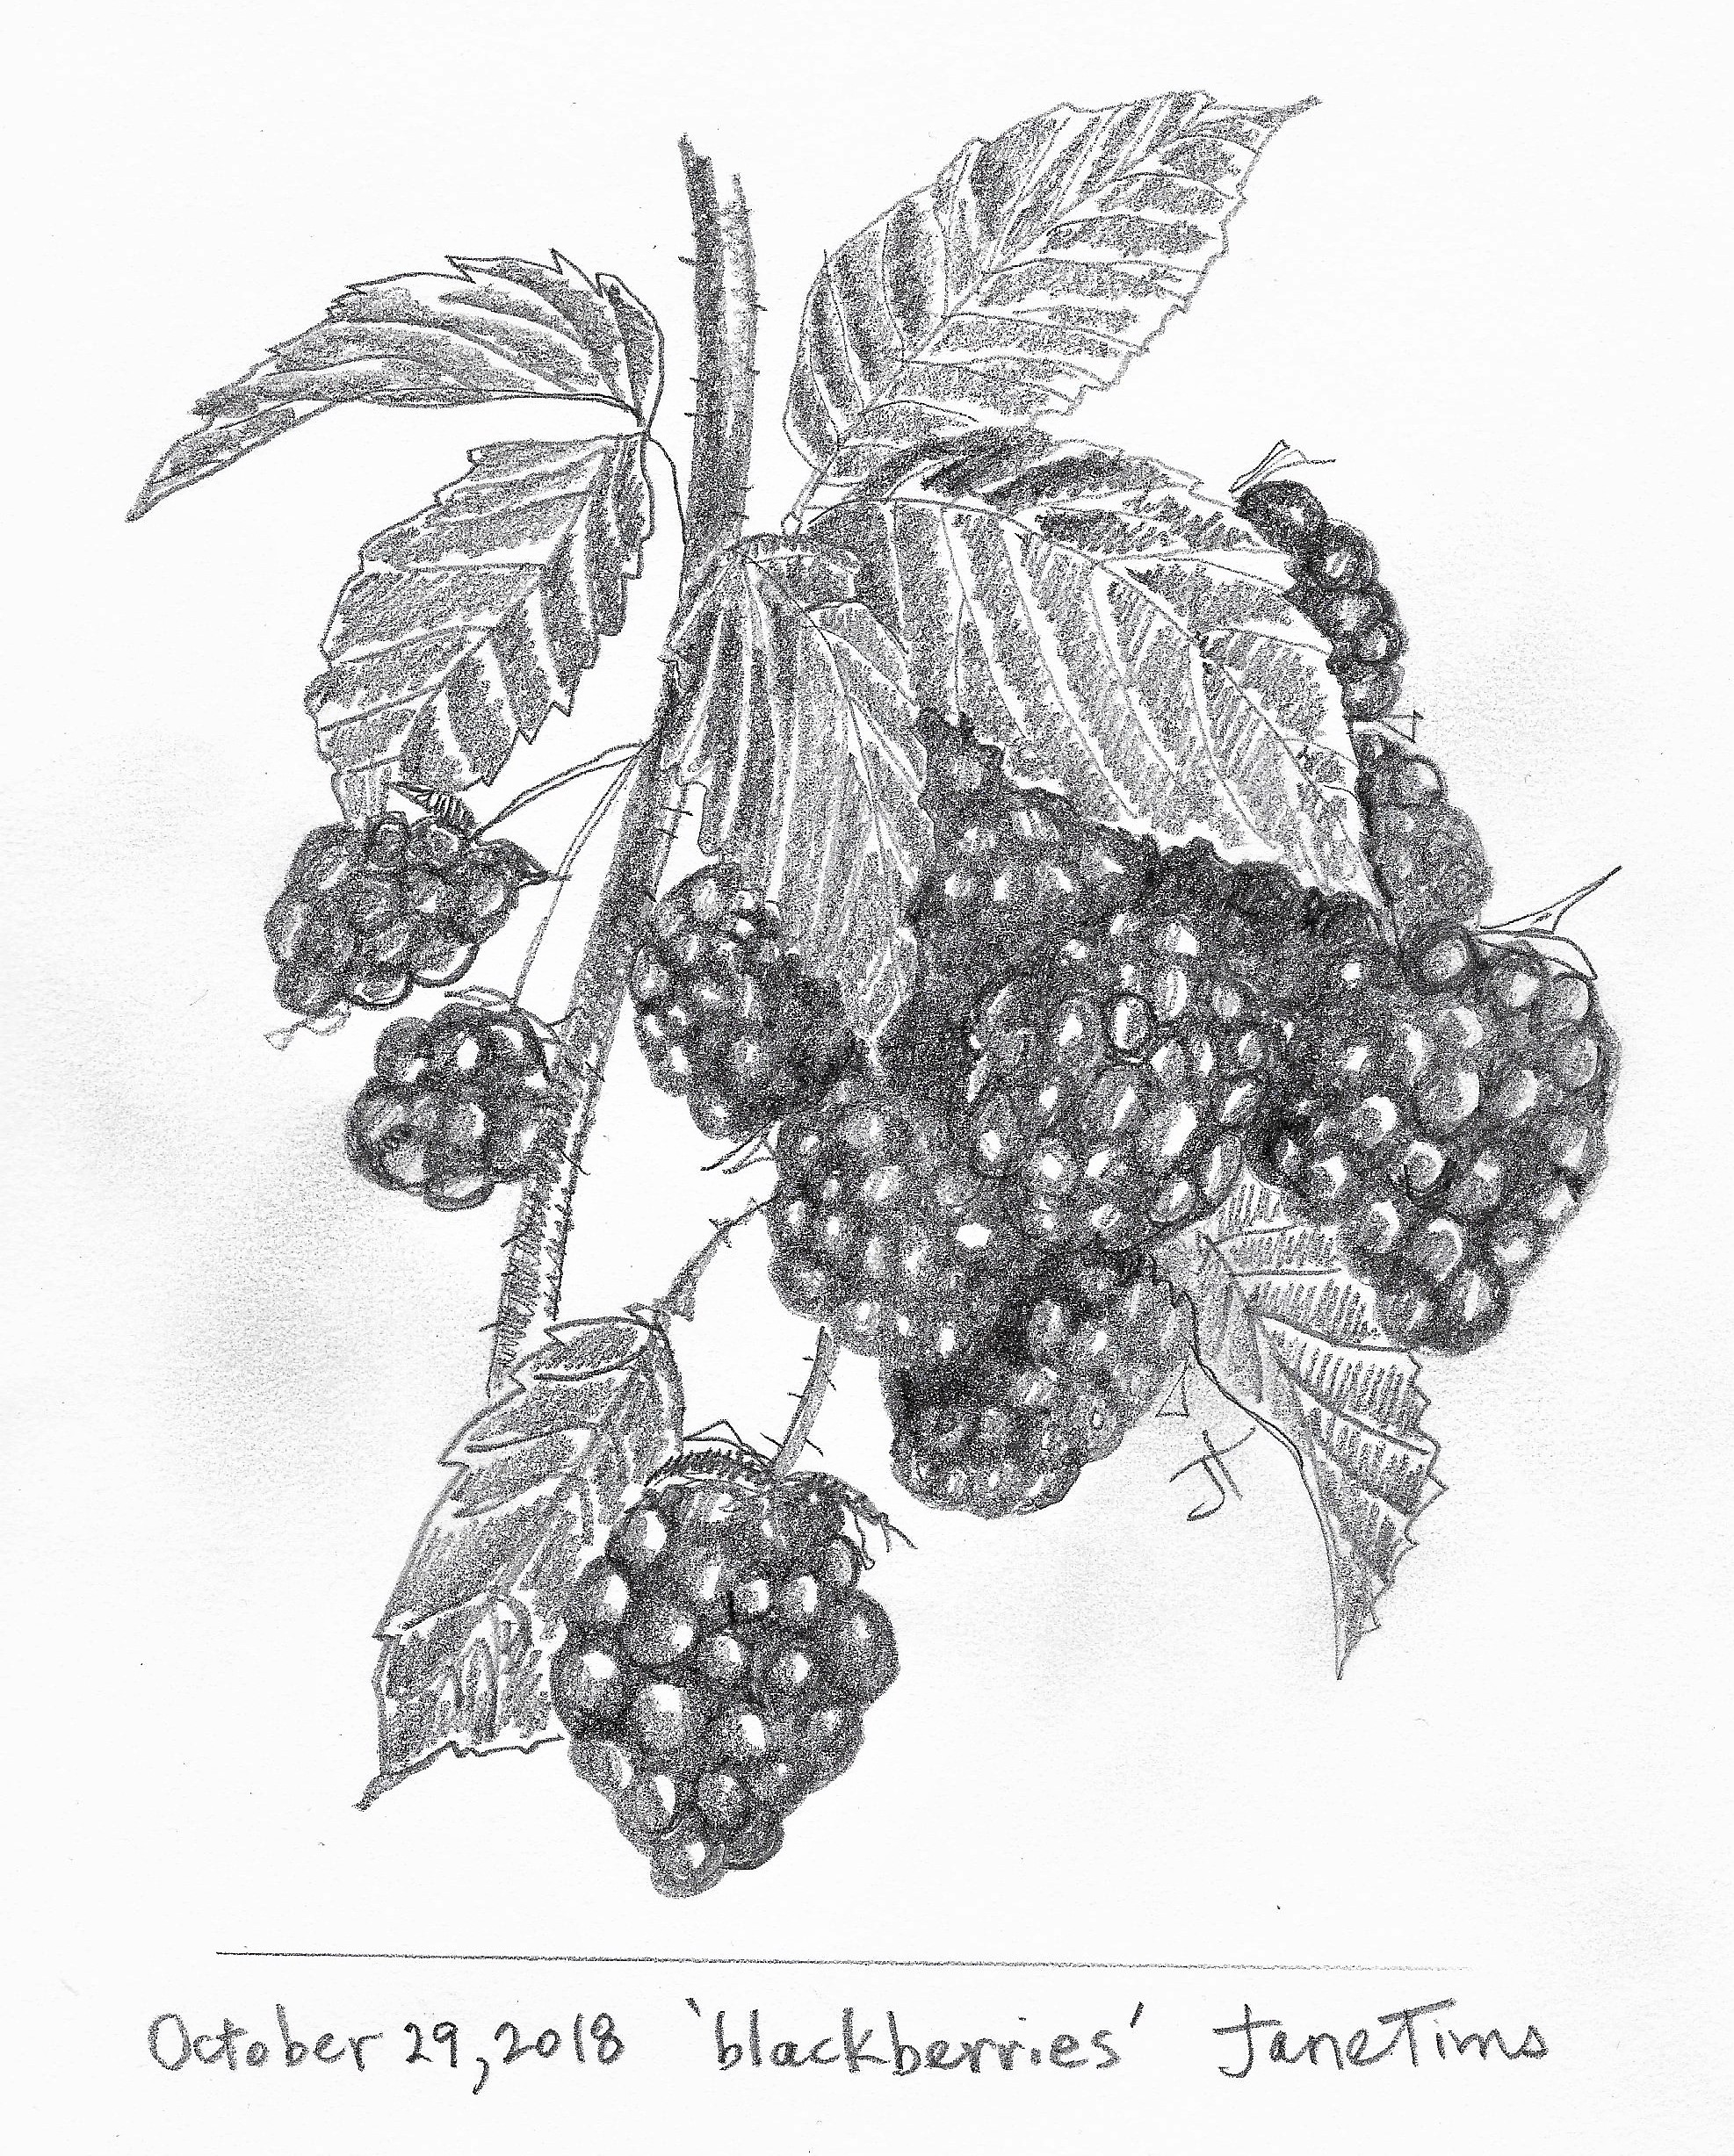 R. 'blackberries' October 29 2018 Jane TimsScan_20181029